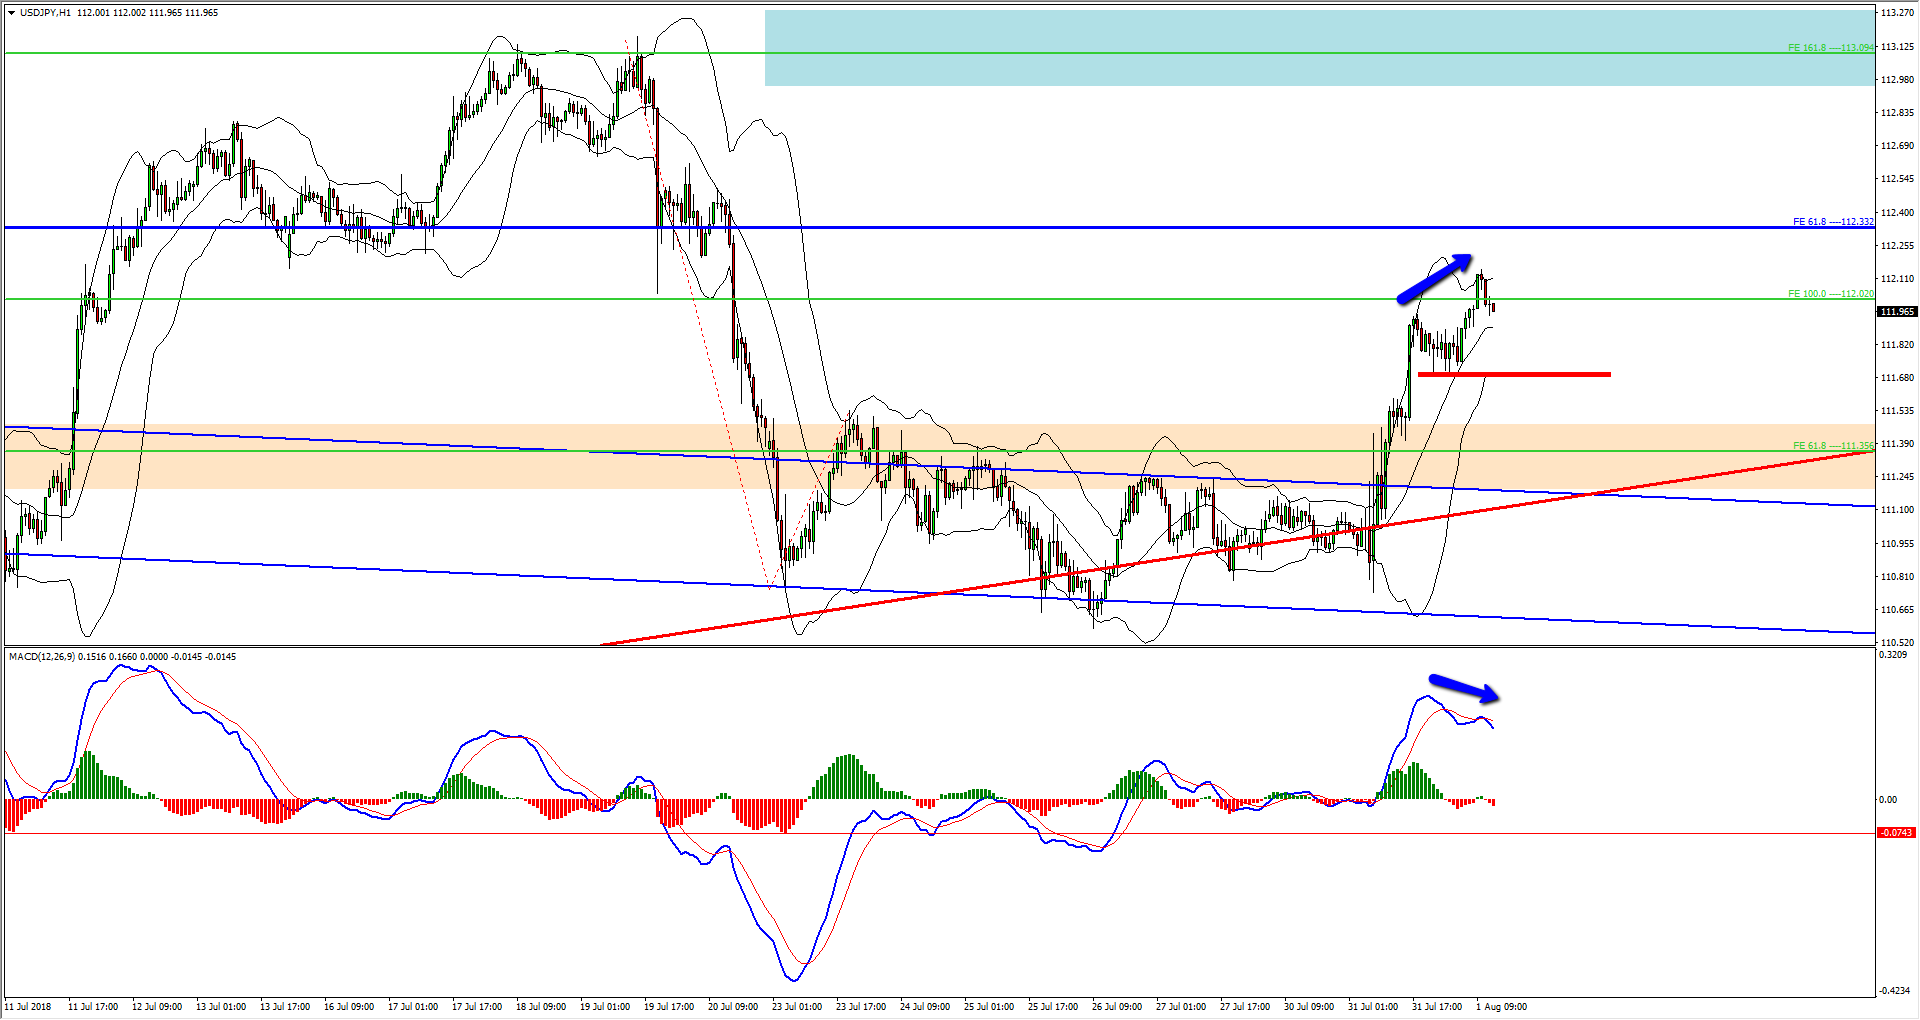 USDJPY Follow Up And Update Of The Buy Opportunity